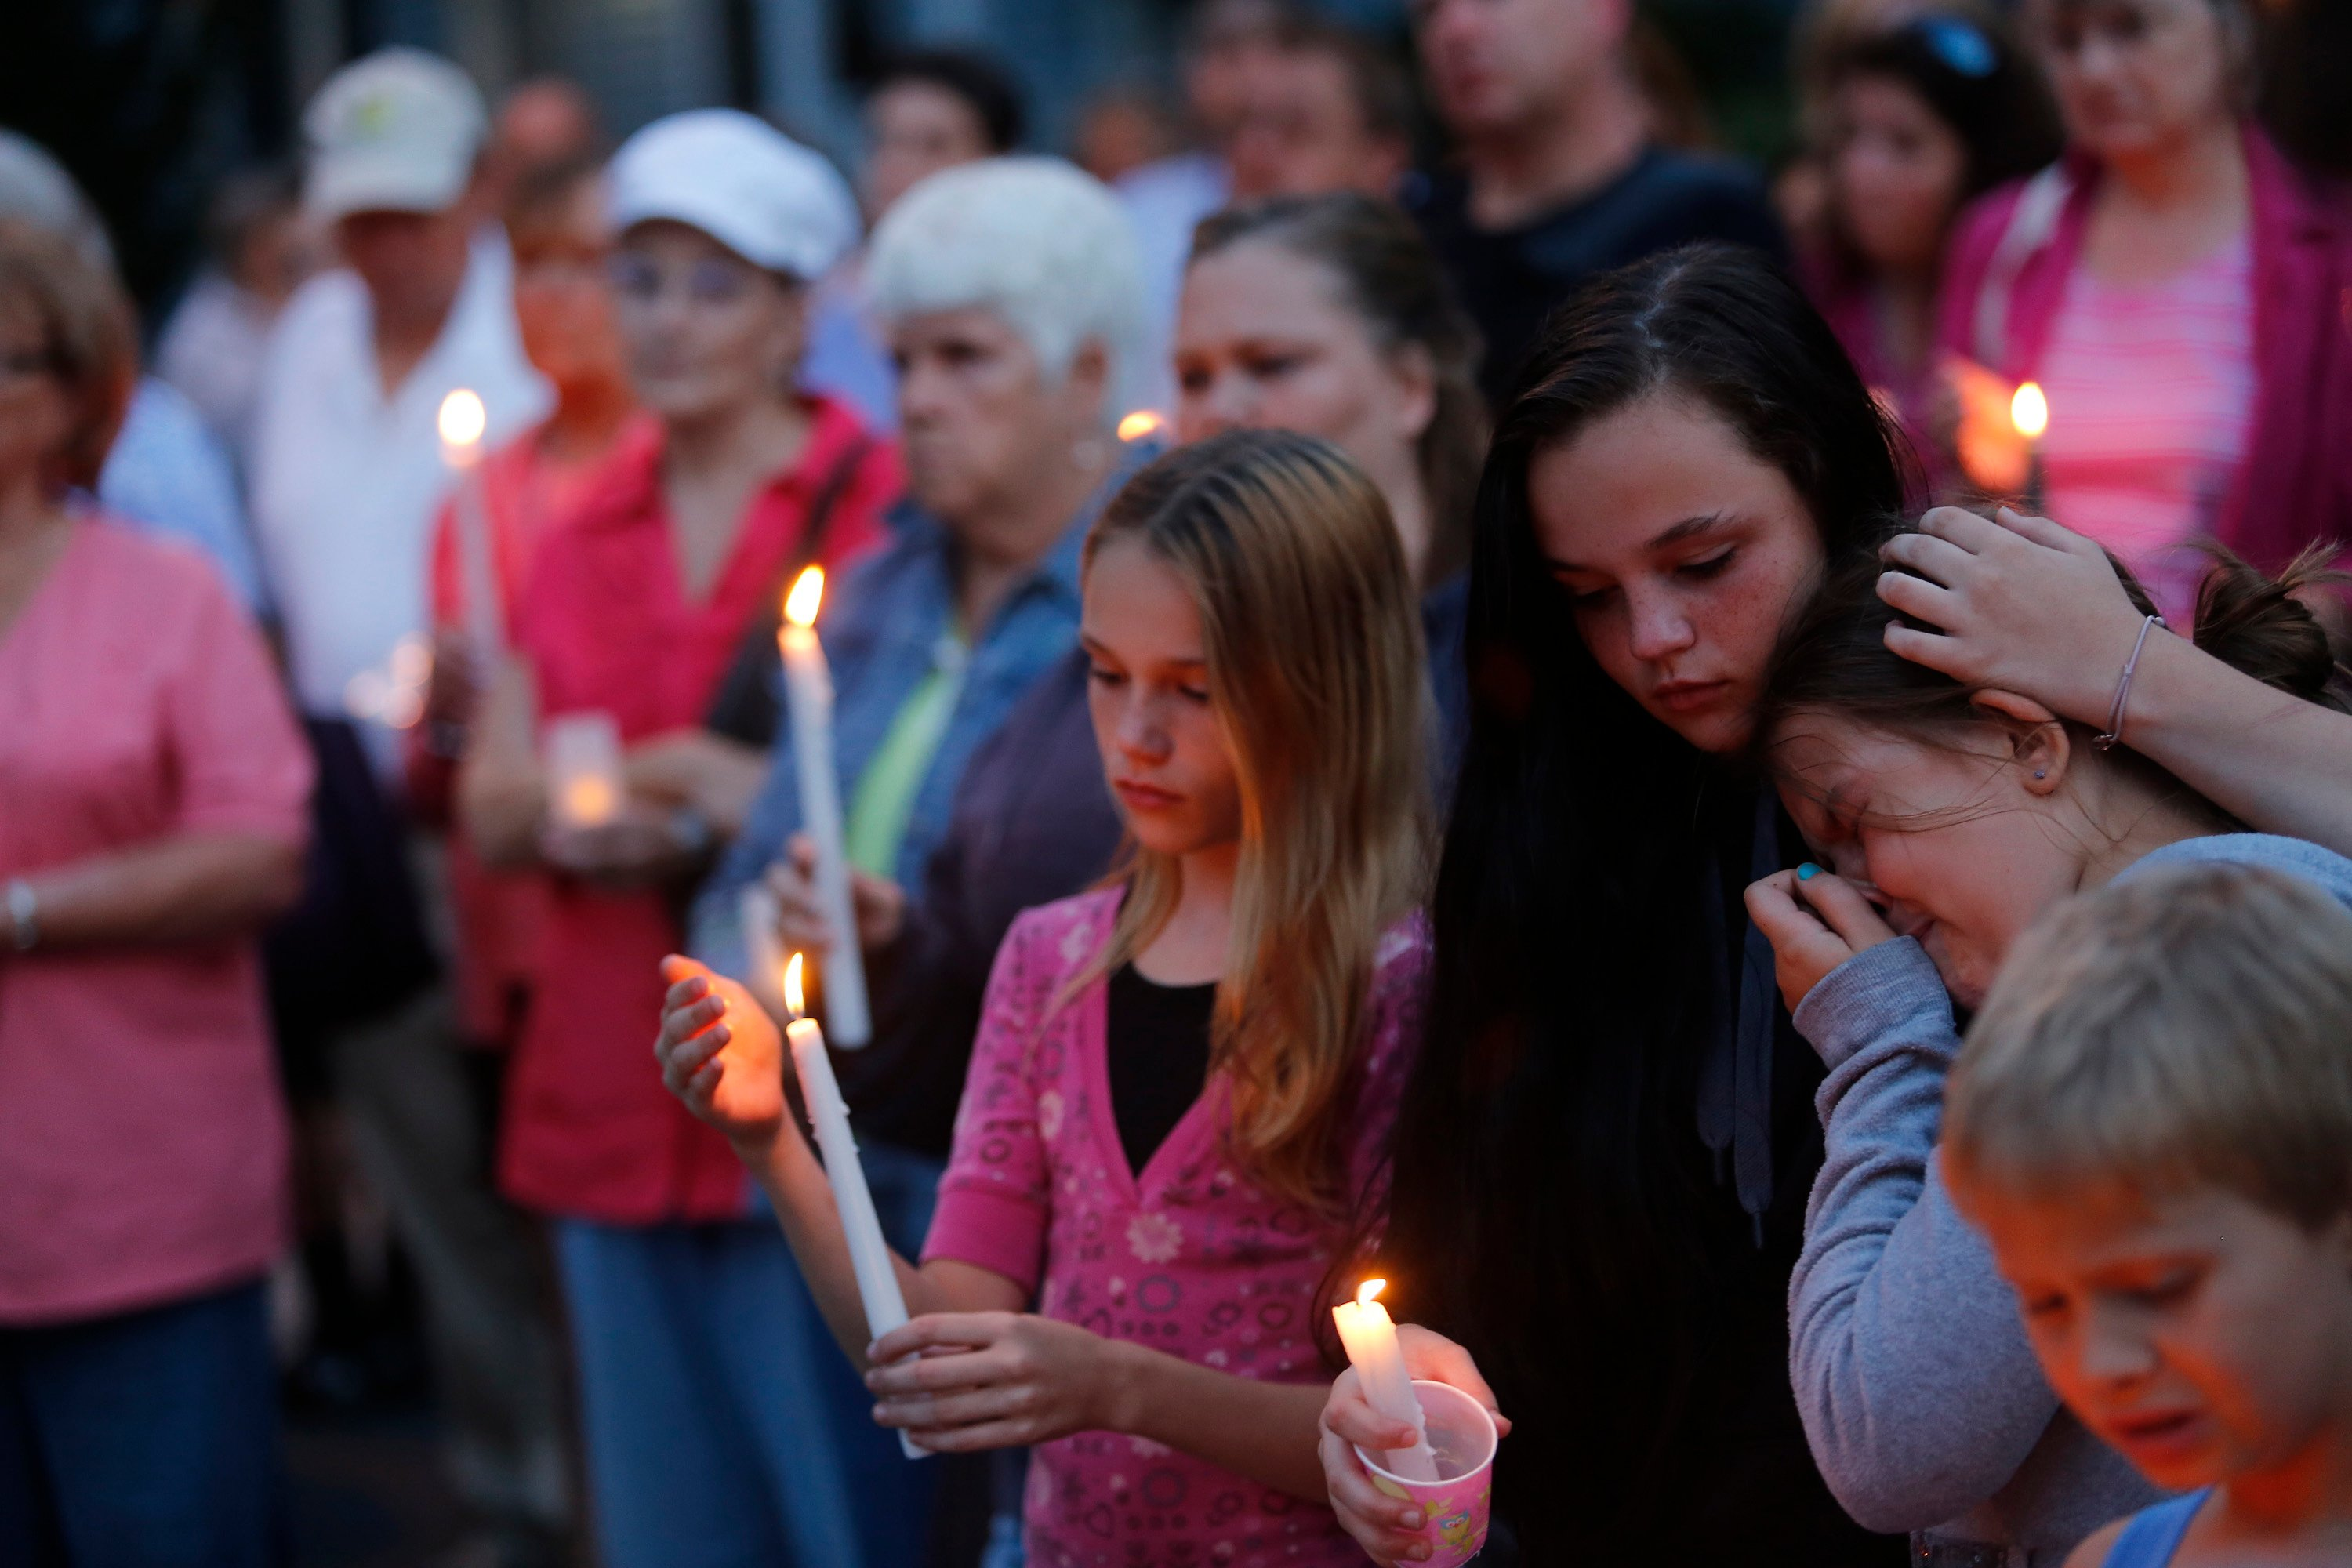 Children comfort each other during the vigil for the Smith family at the RiverView apartments in Saco.